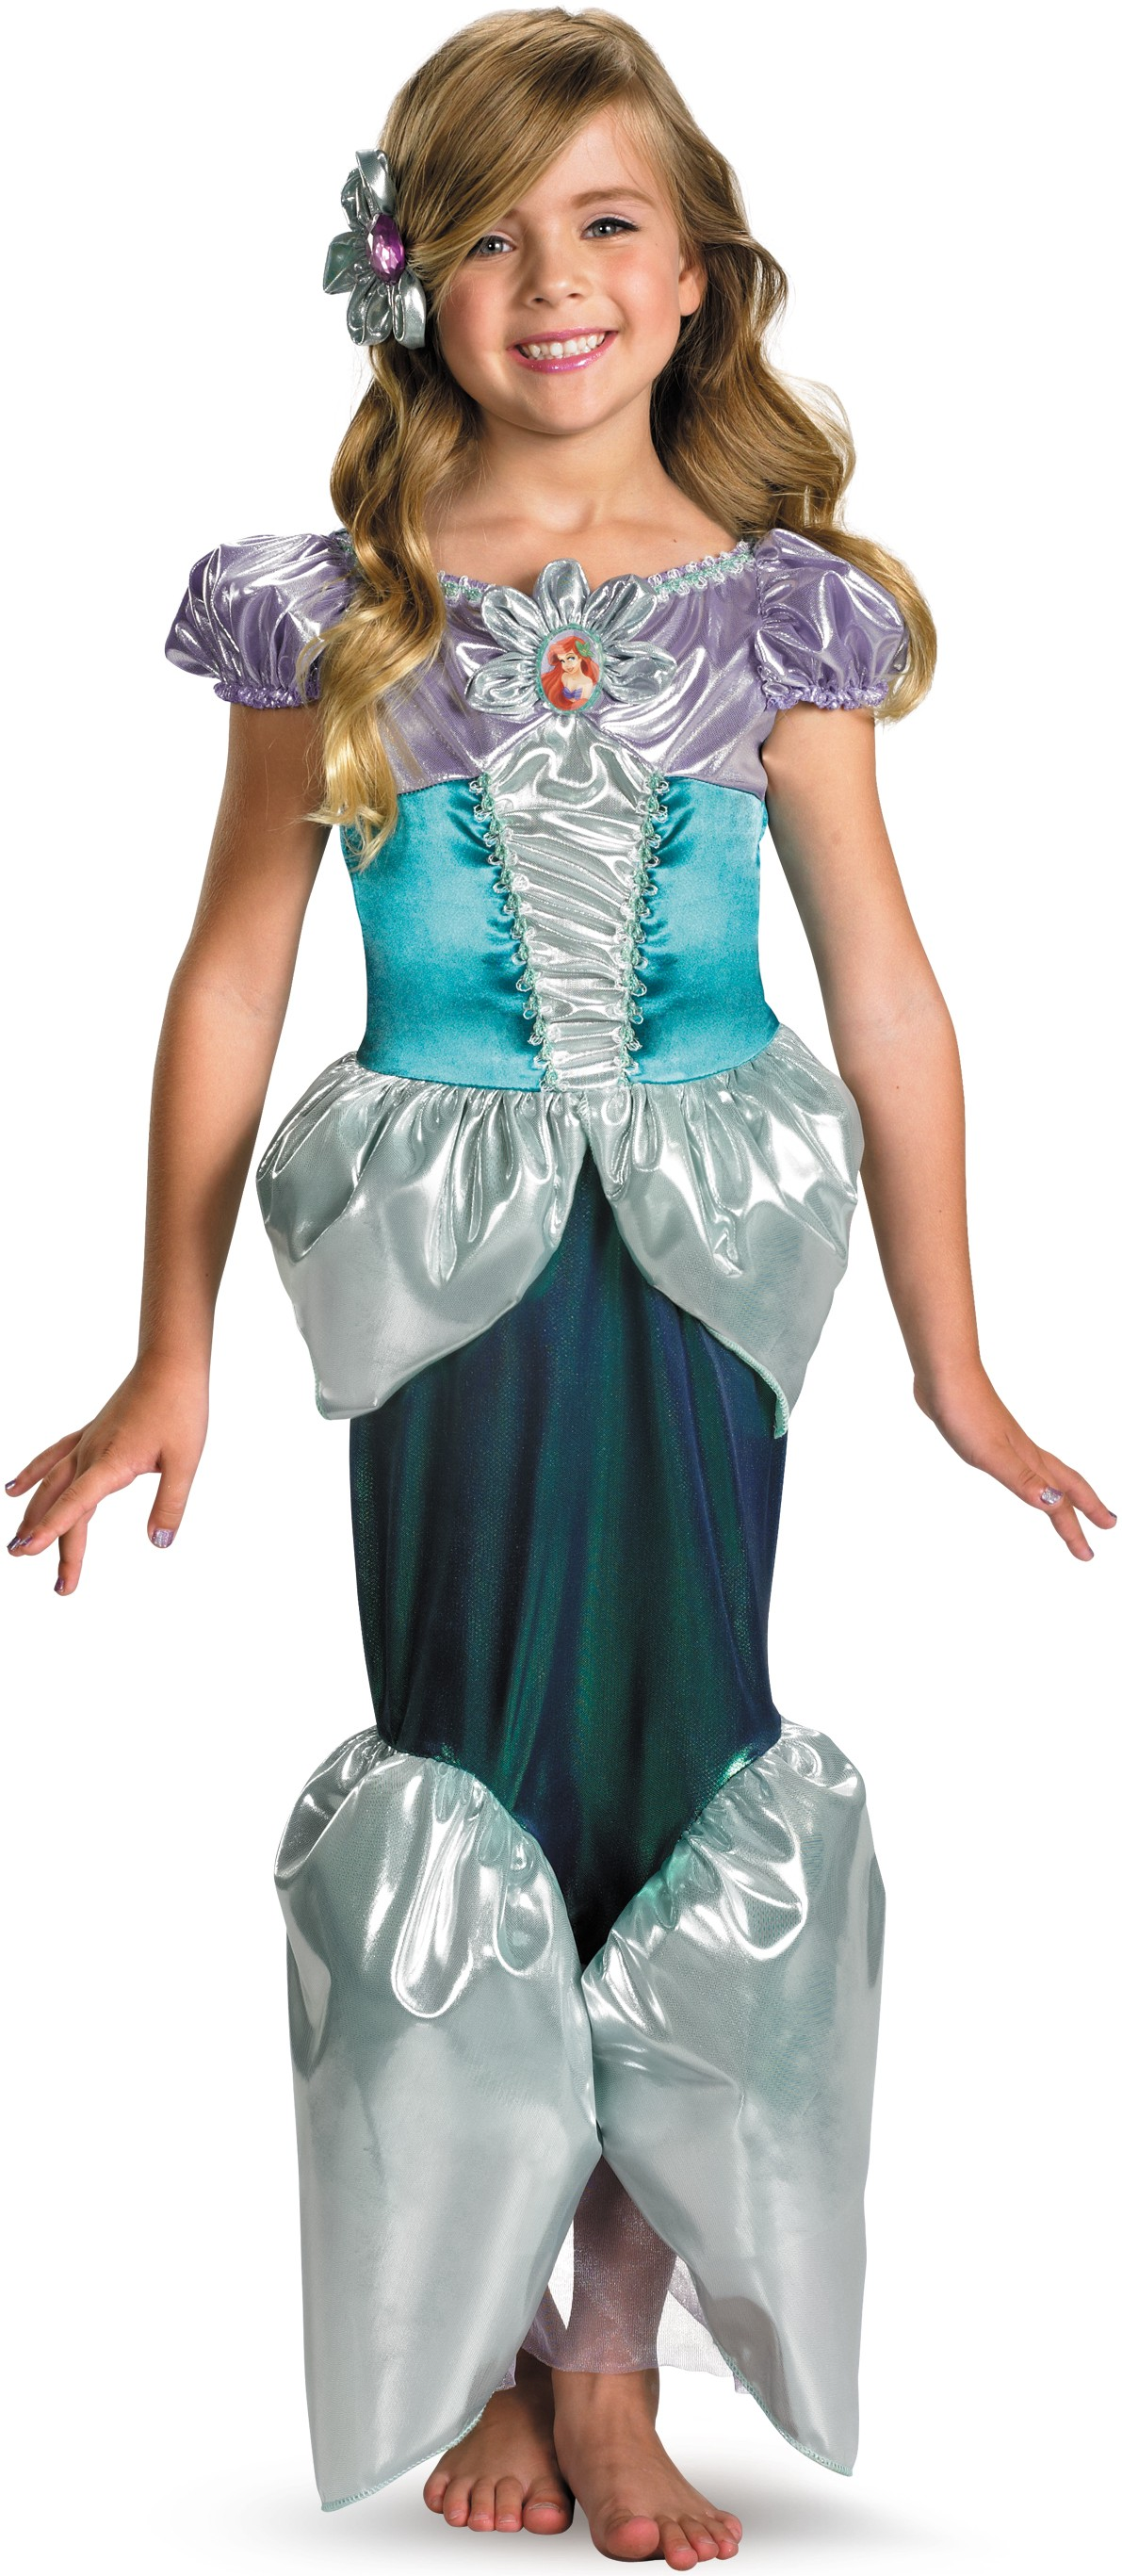 Disney The Little Mermaid Princess Ariel Lame Deluxe Toddler / Child Girlu0027s Costume.jpg  sc 1 st  Costumes.com.au : toddler mermaid halloween costume  - Germanpascual.Com